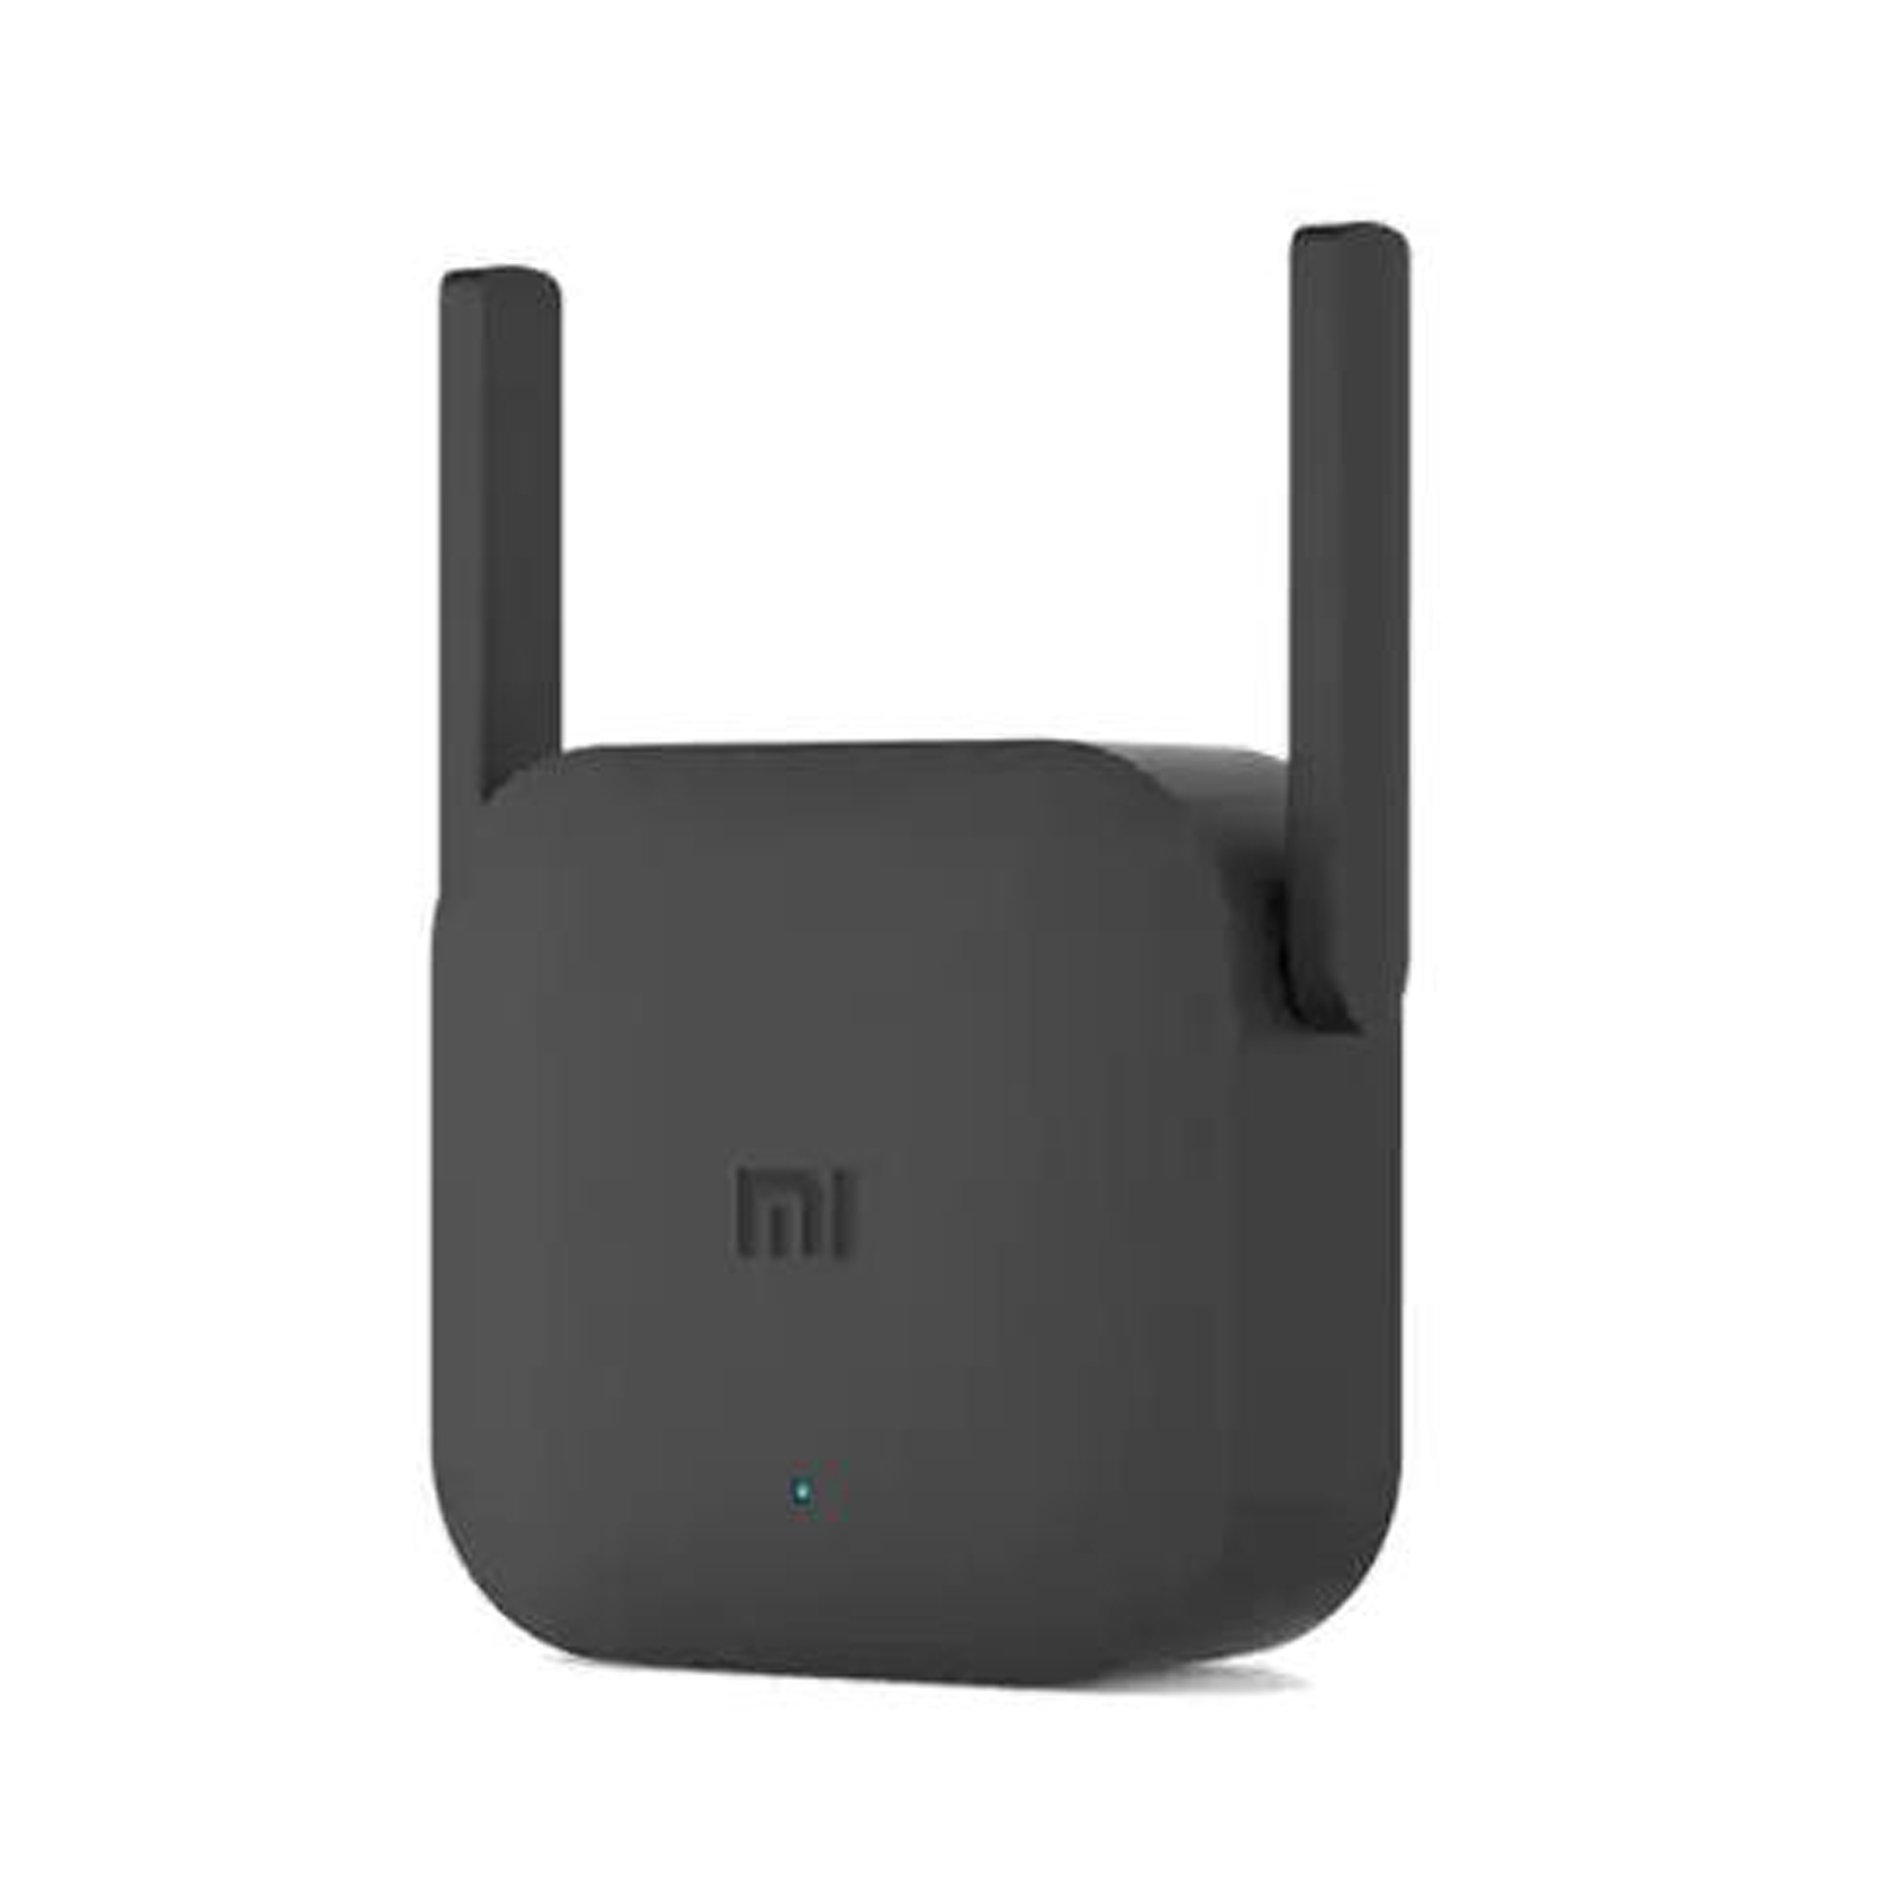 IDS Home 2 4G WiFi Amplifier with 2 Antenna - BLACK